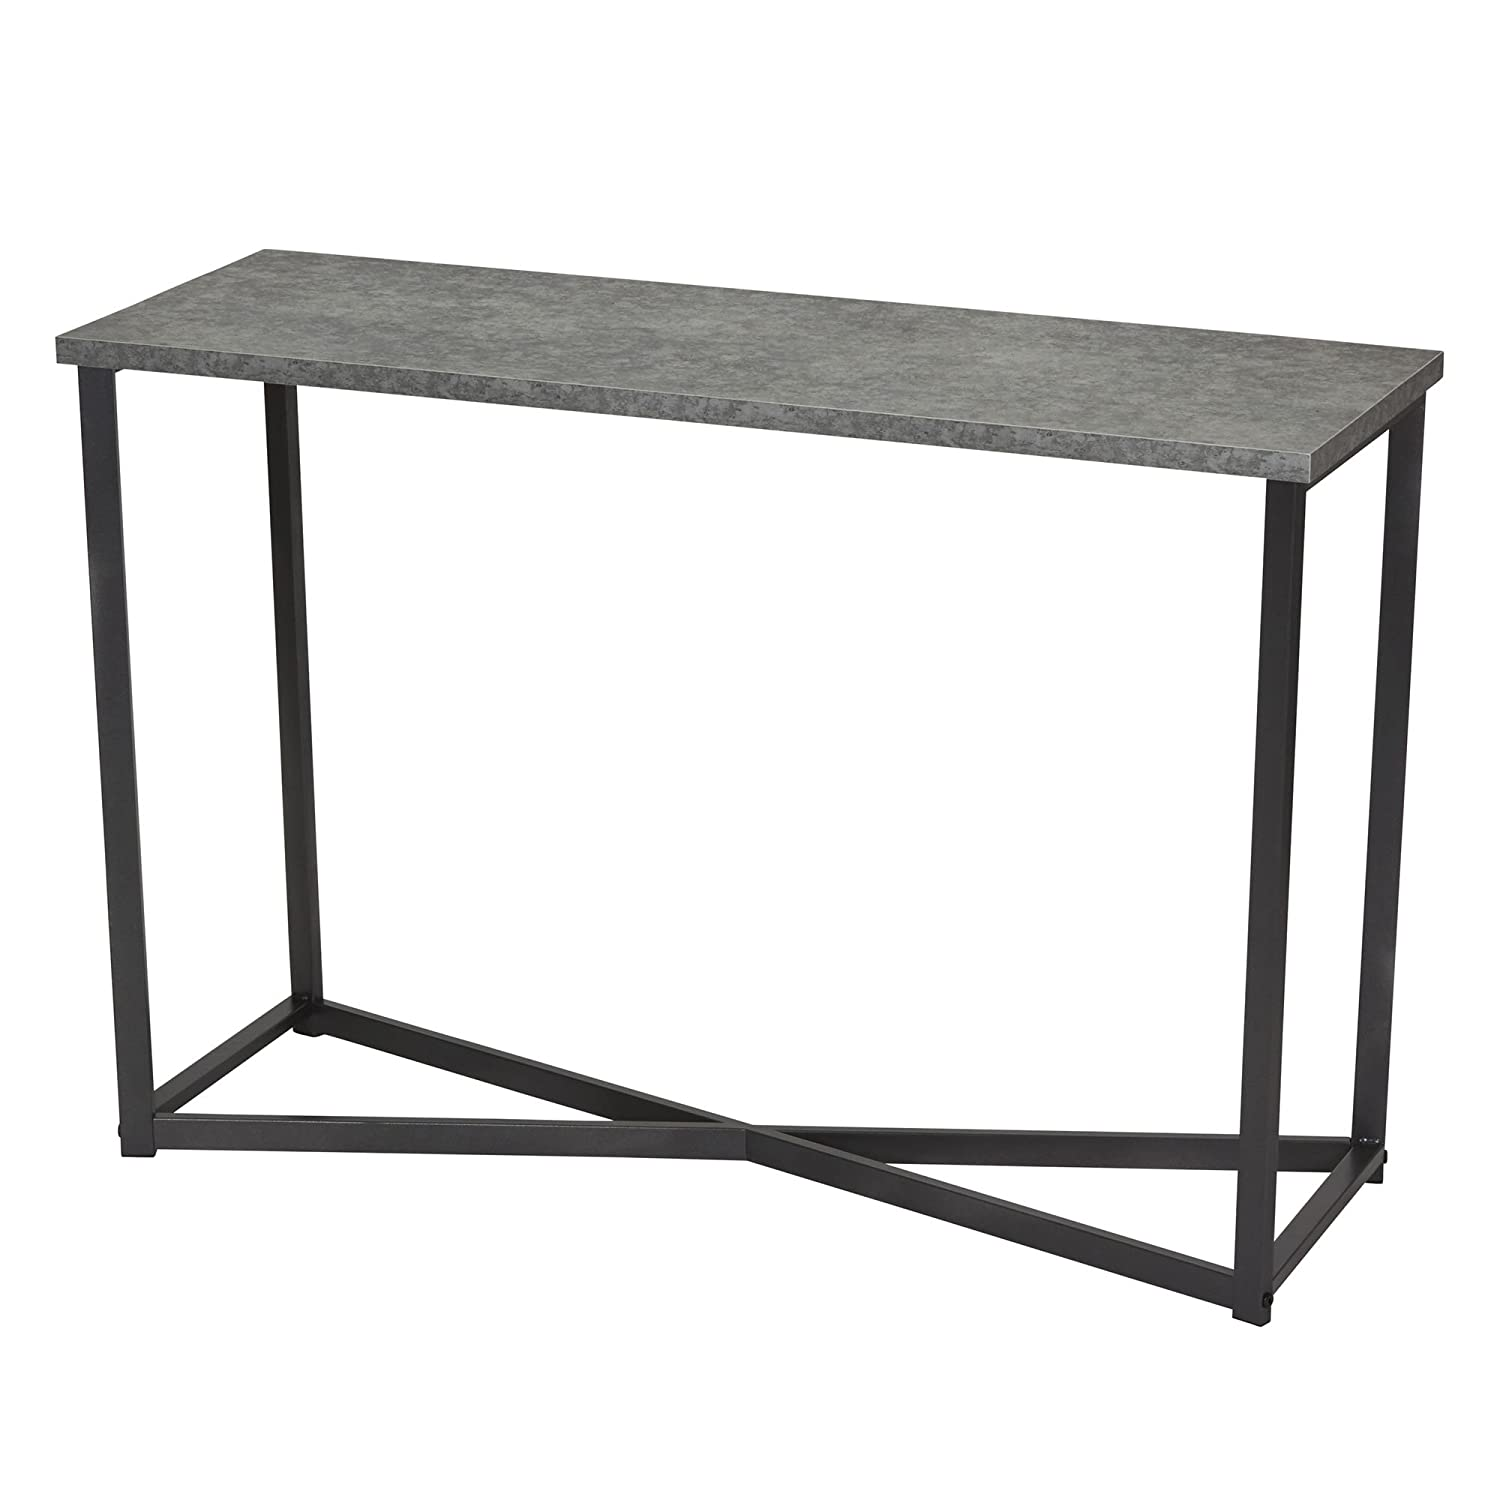 Amazon com household essentials 8091 1 slate faux concrete sofa table console table for entryway kitchen dining